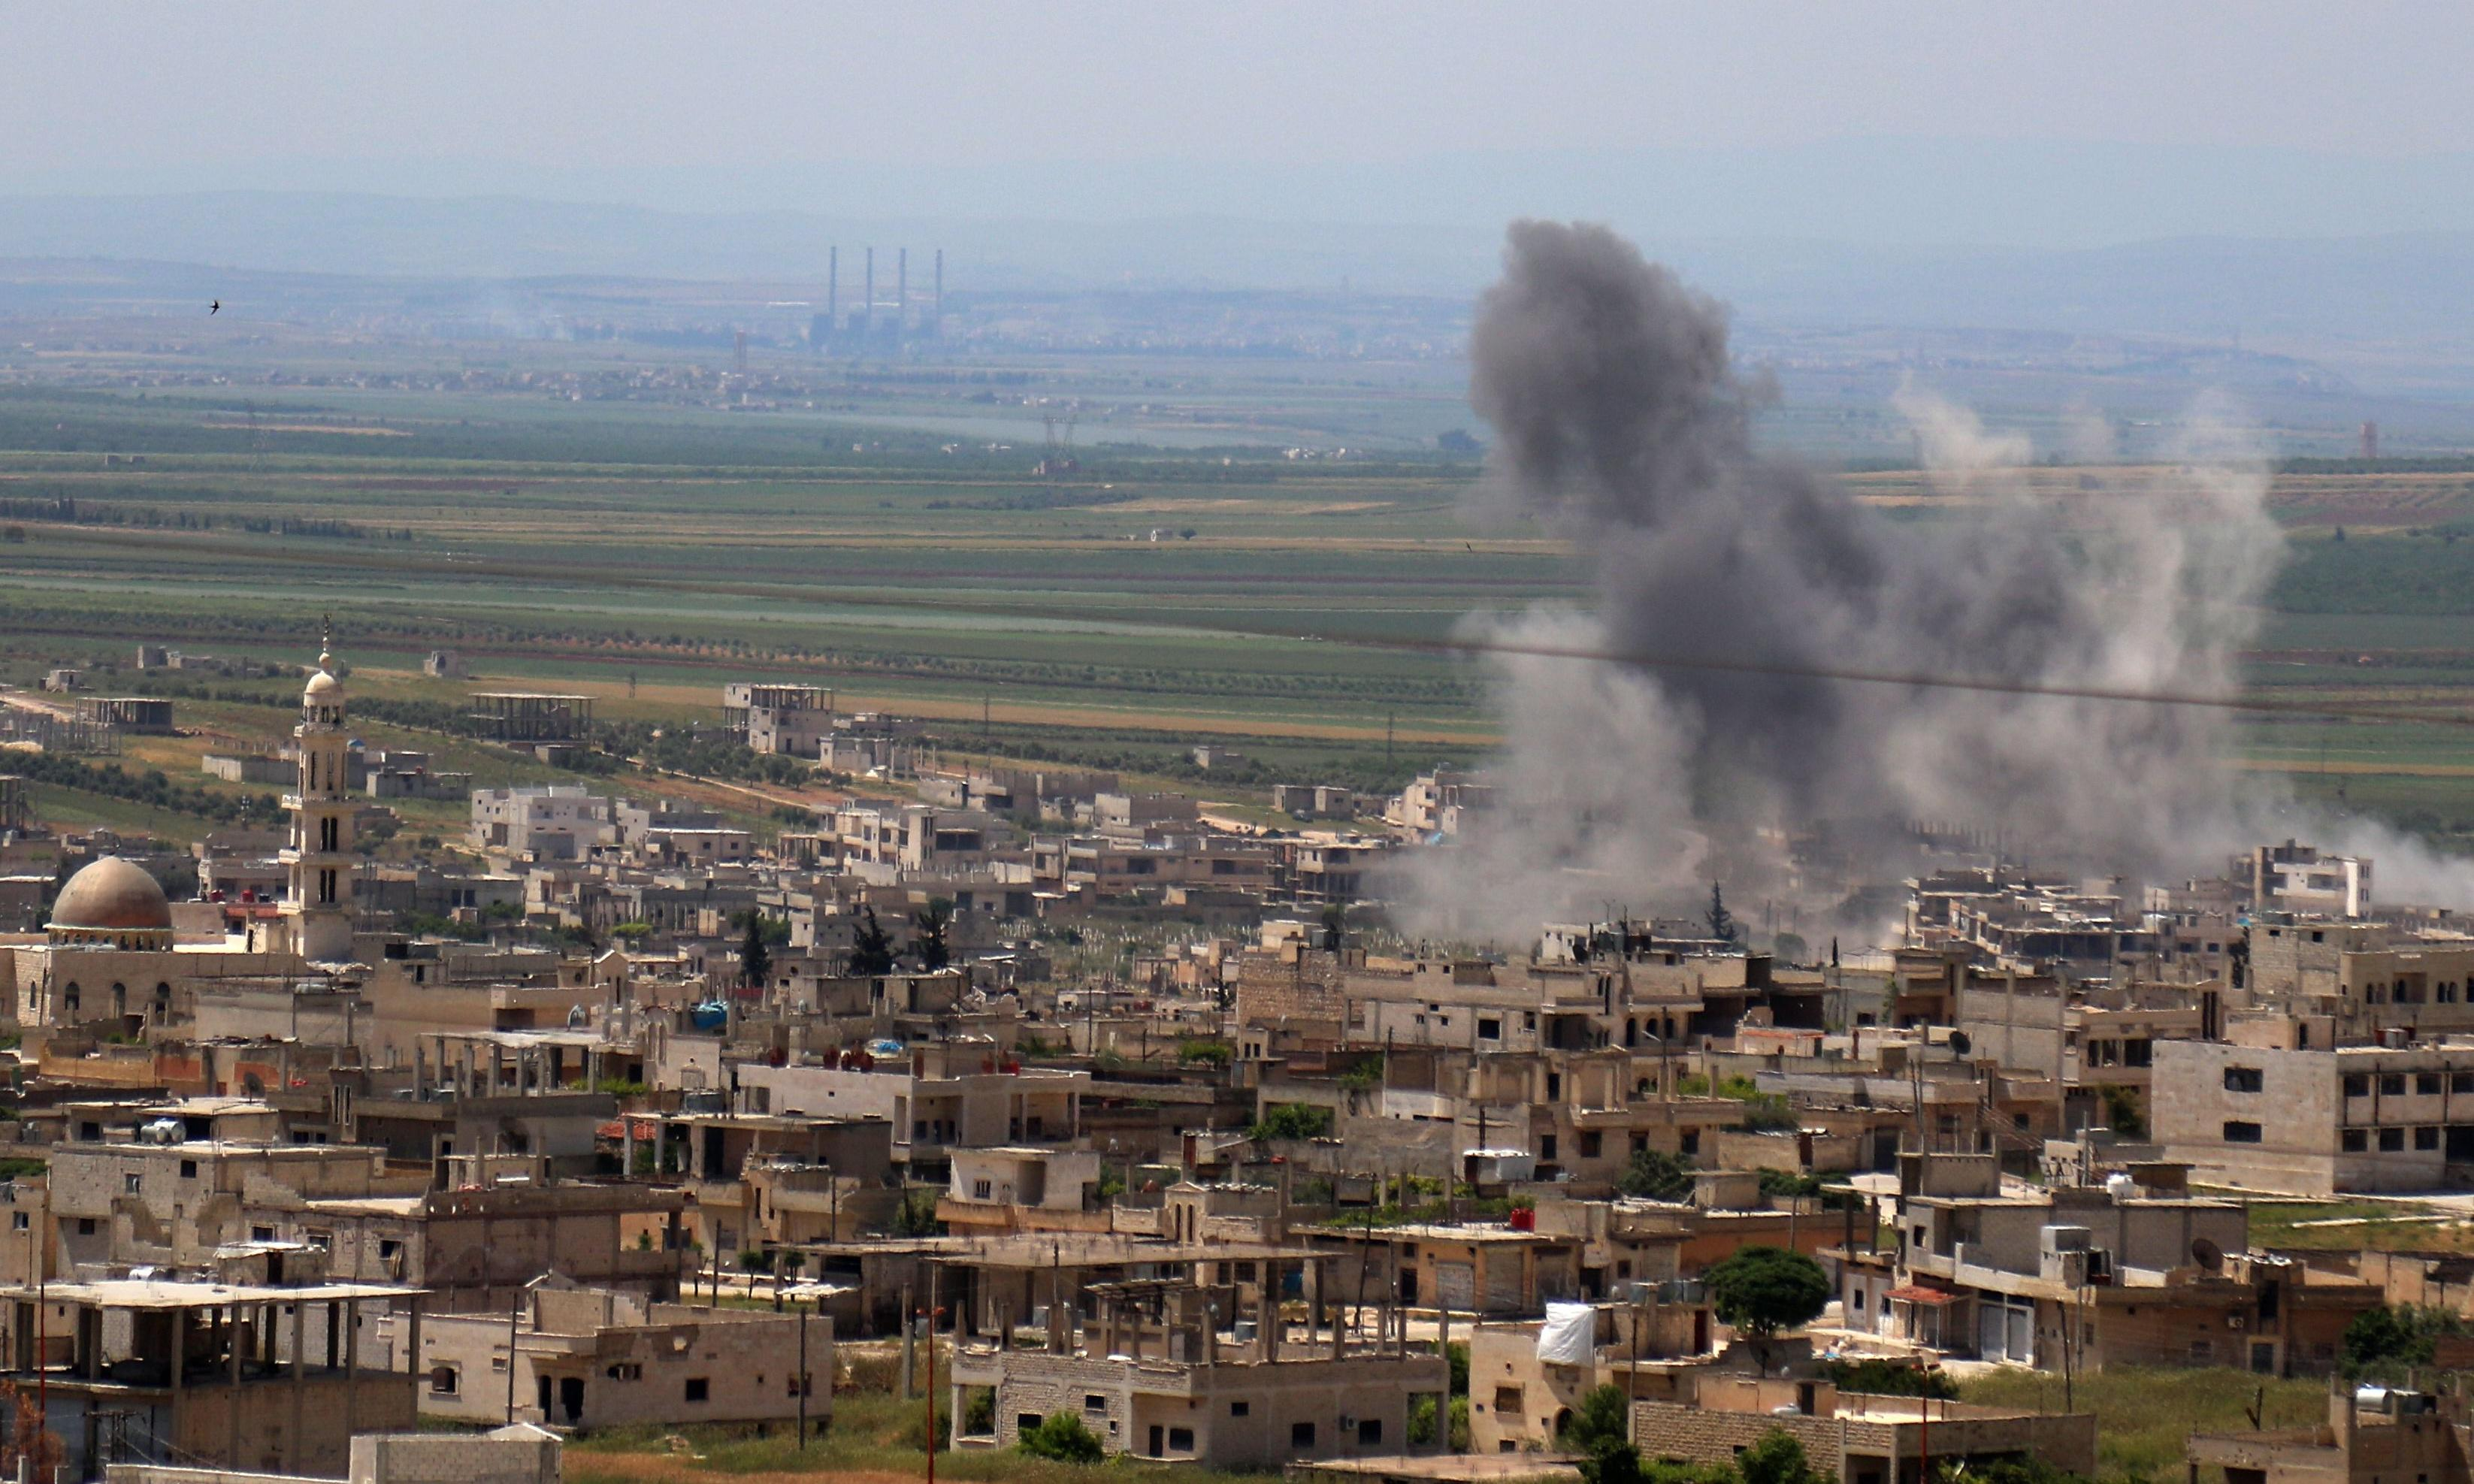 British nationals to be banned from parts of Syria under new law